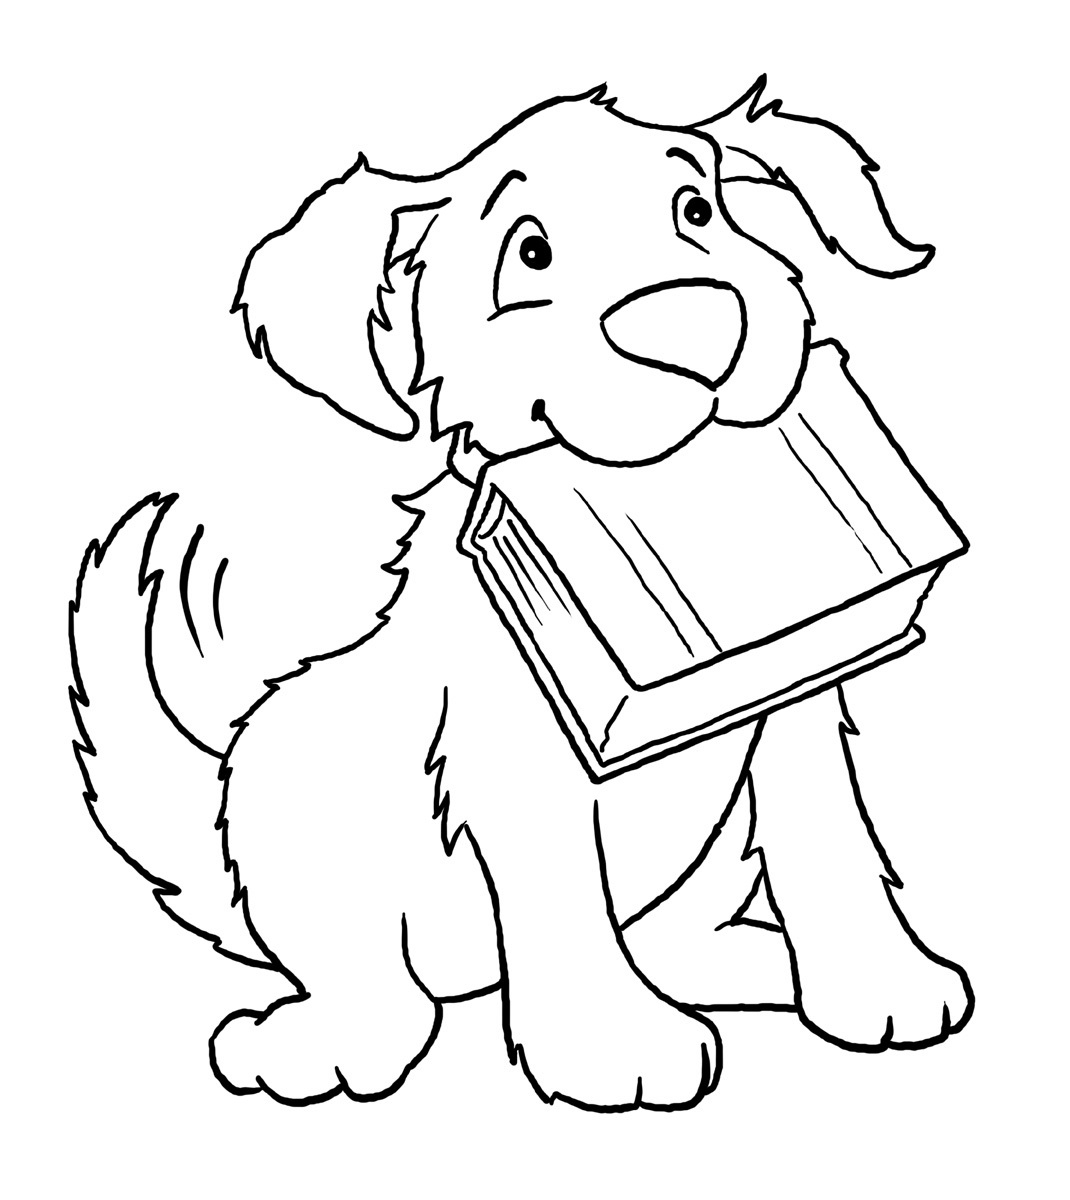 1070x1200 Dog Drawings For Kids Free Printable Dog Coloring Pages For Kids